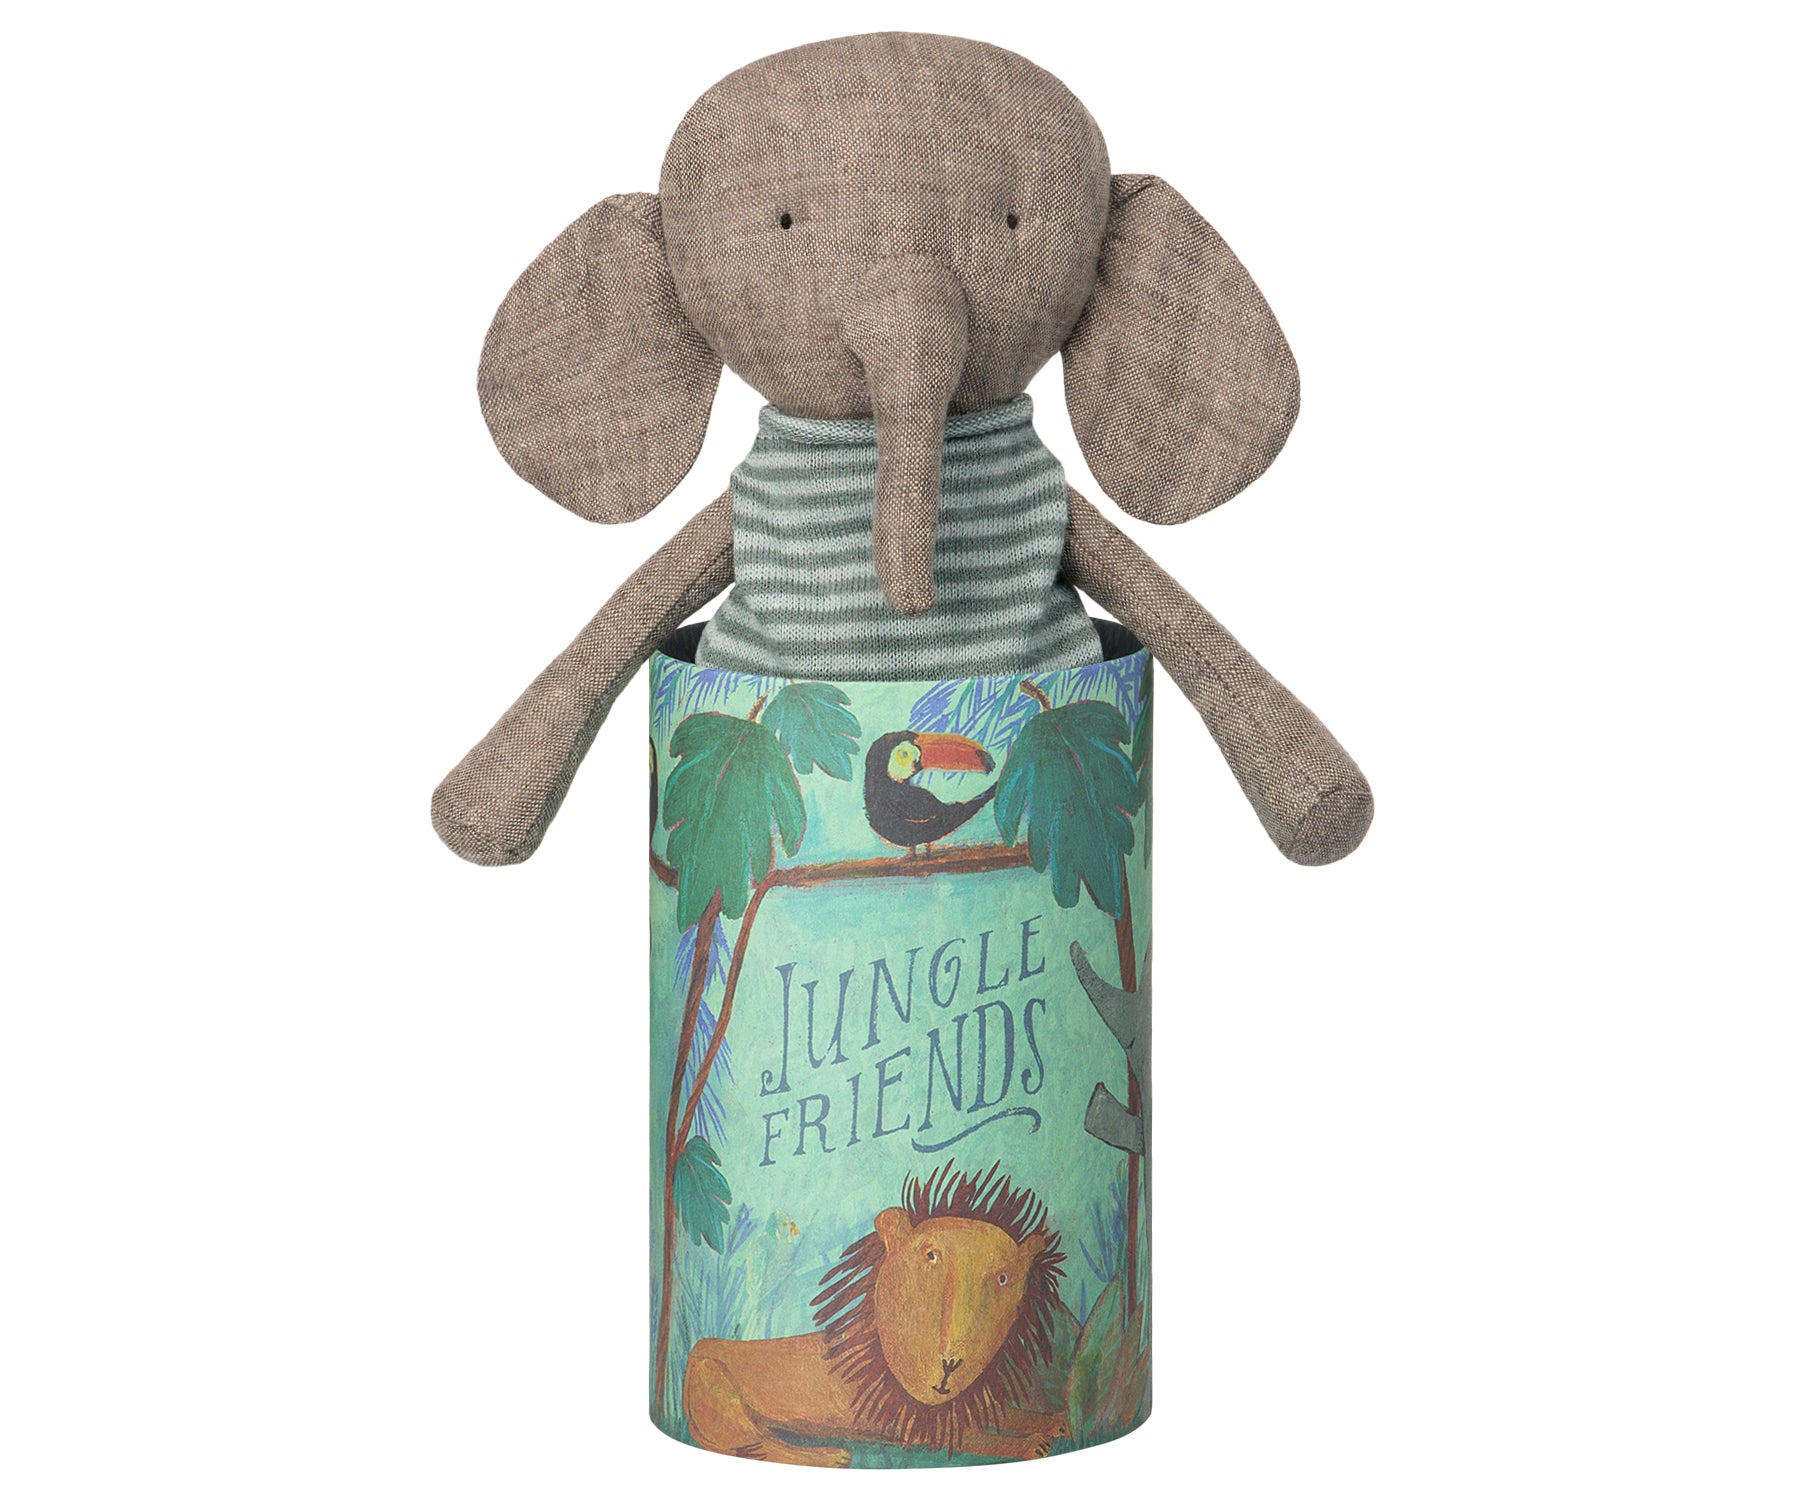 Jungle Friends - elefante en tubo decorado - Miss Coppelia